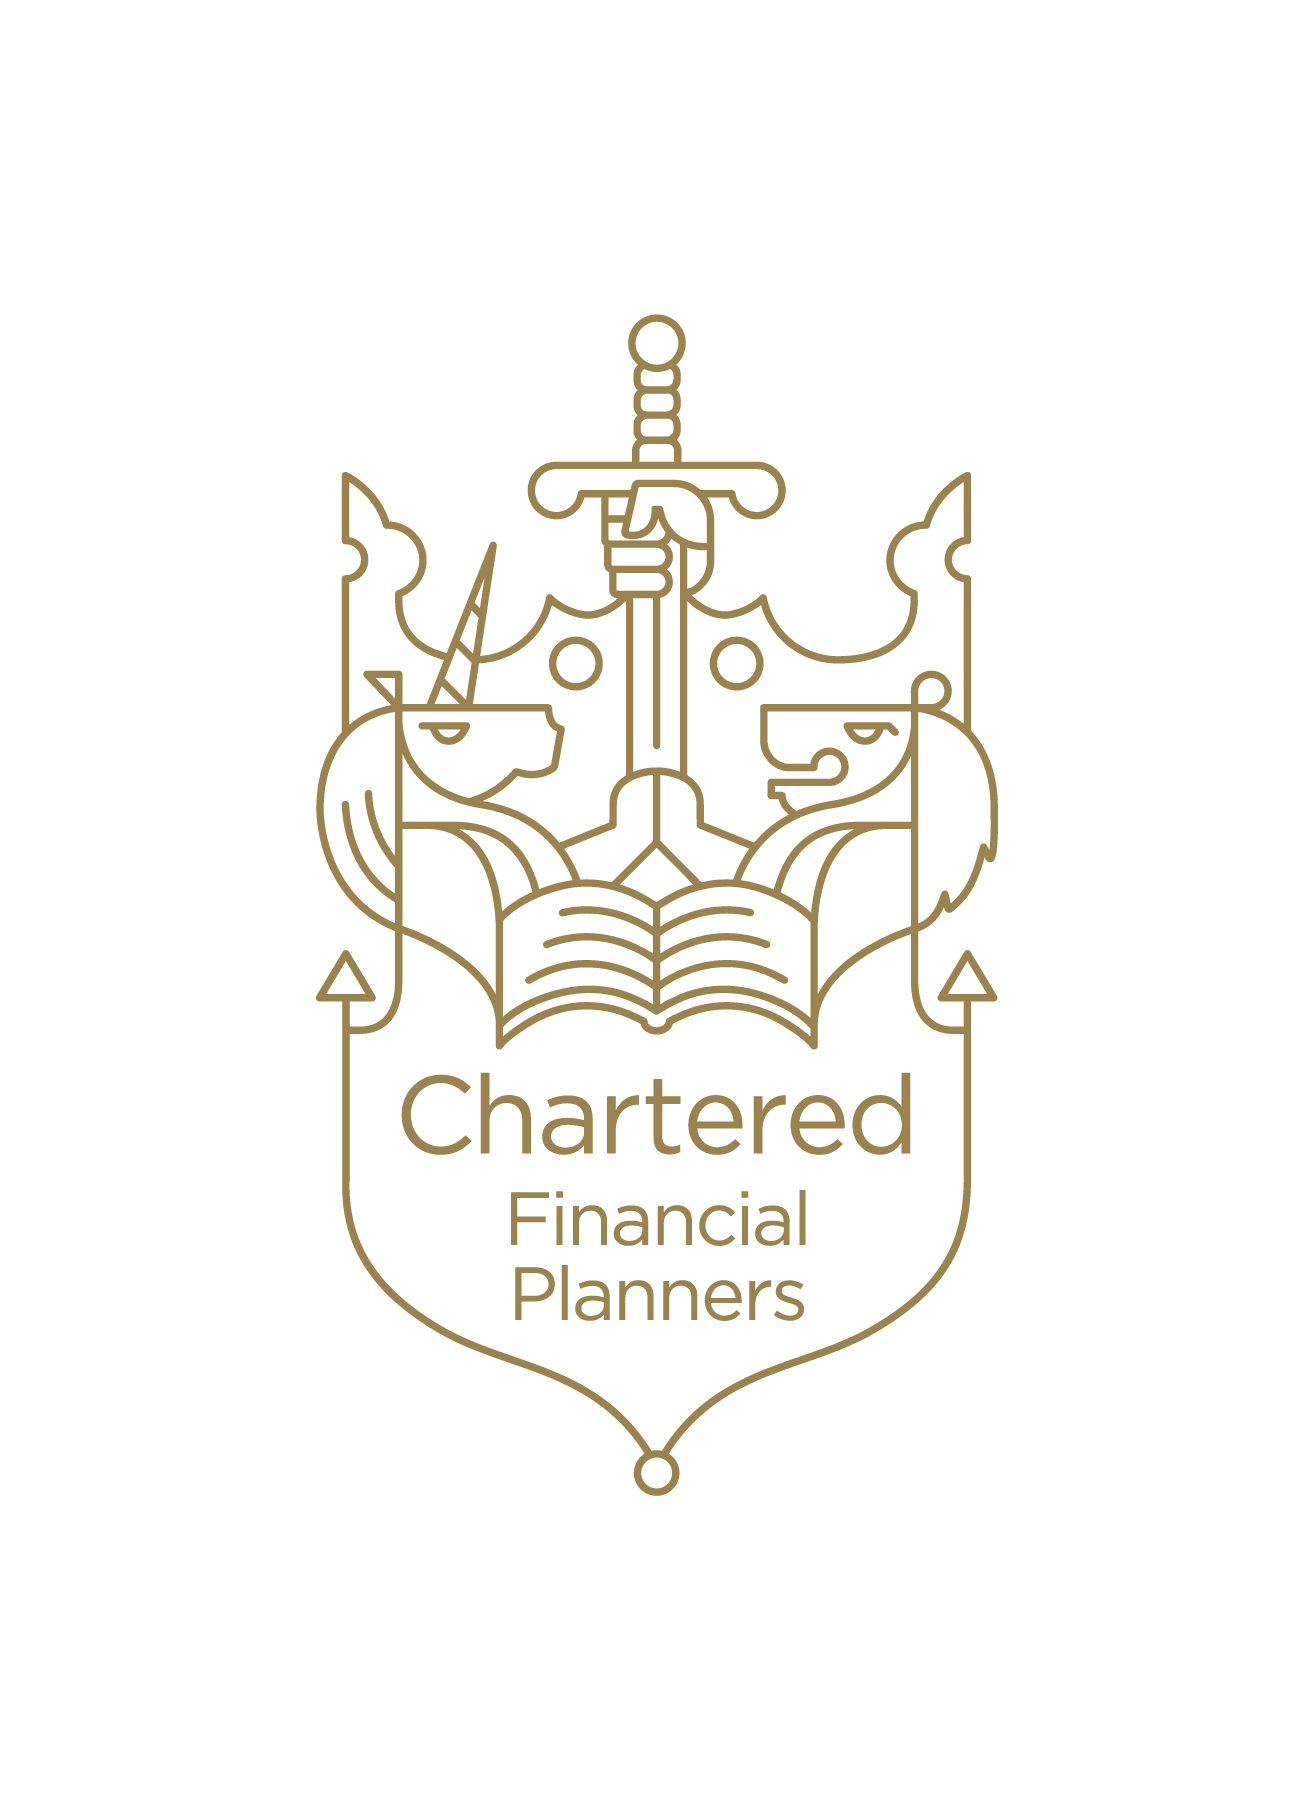 Wills & Trusts Chartered Financial Planners Ltd